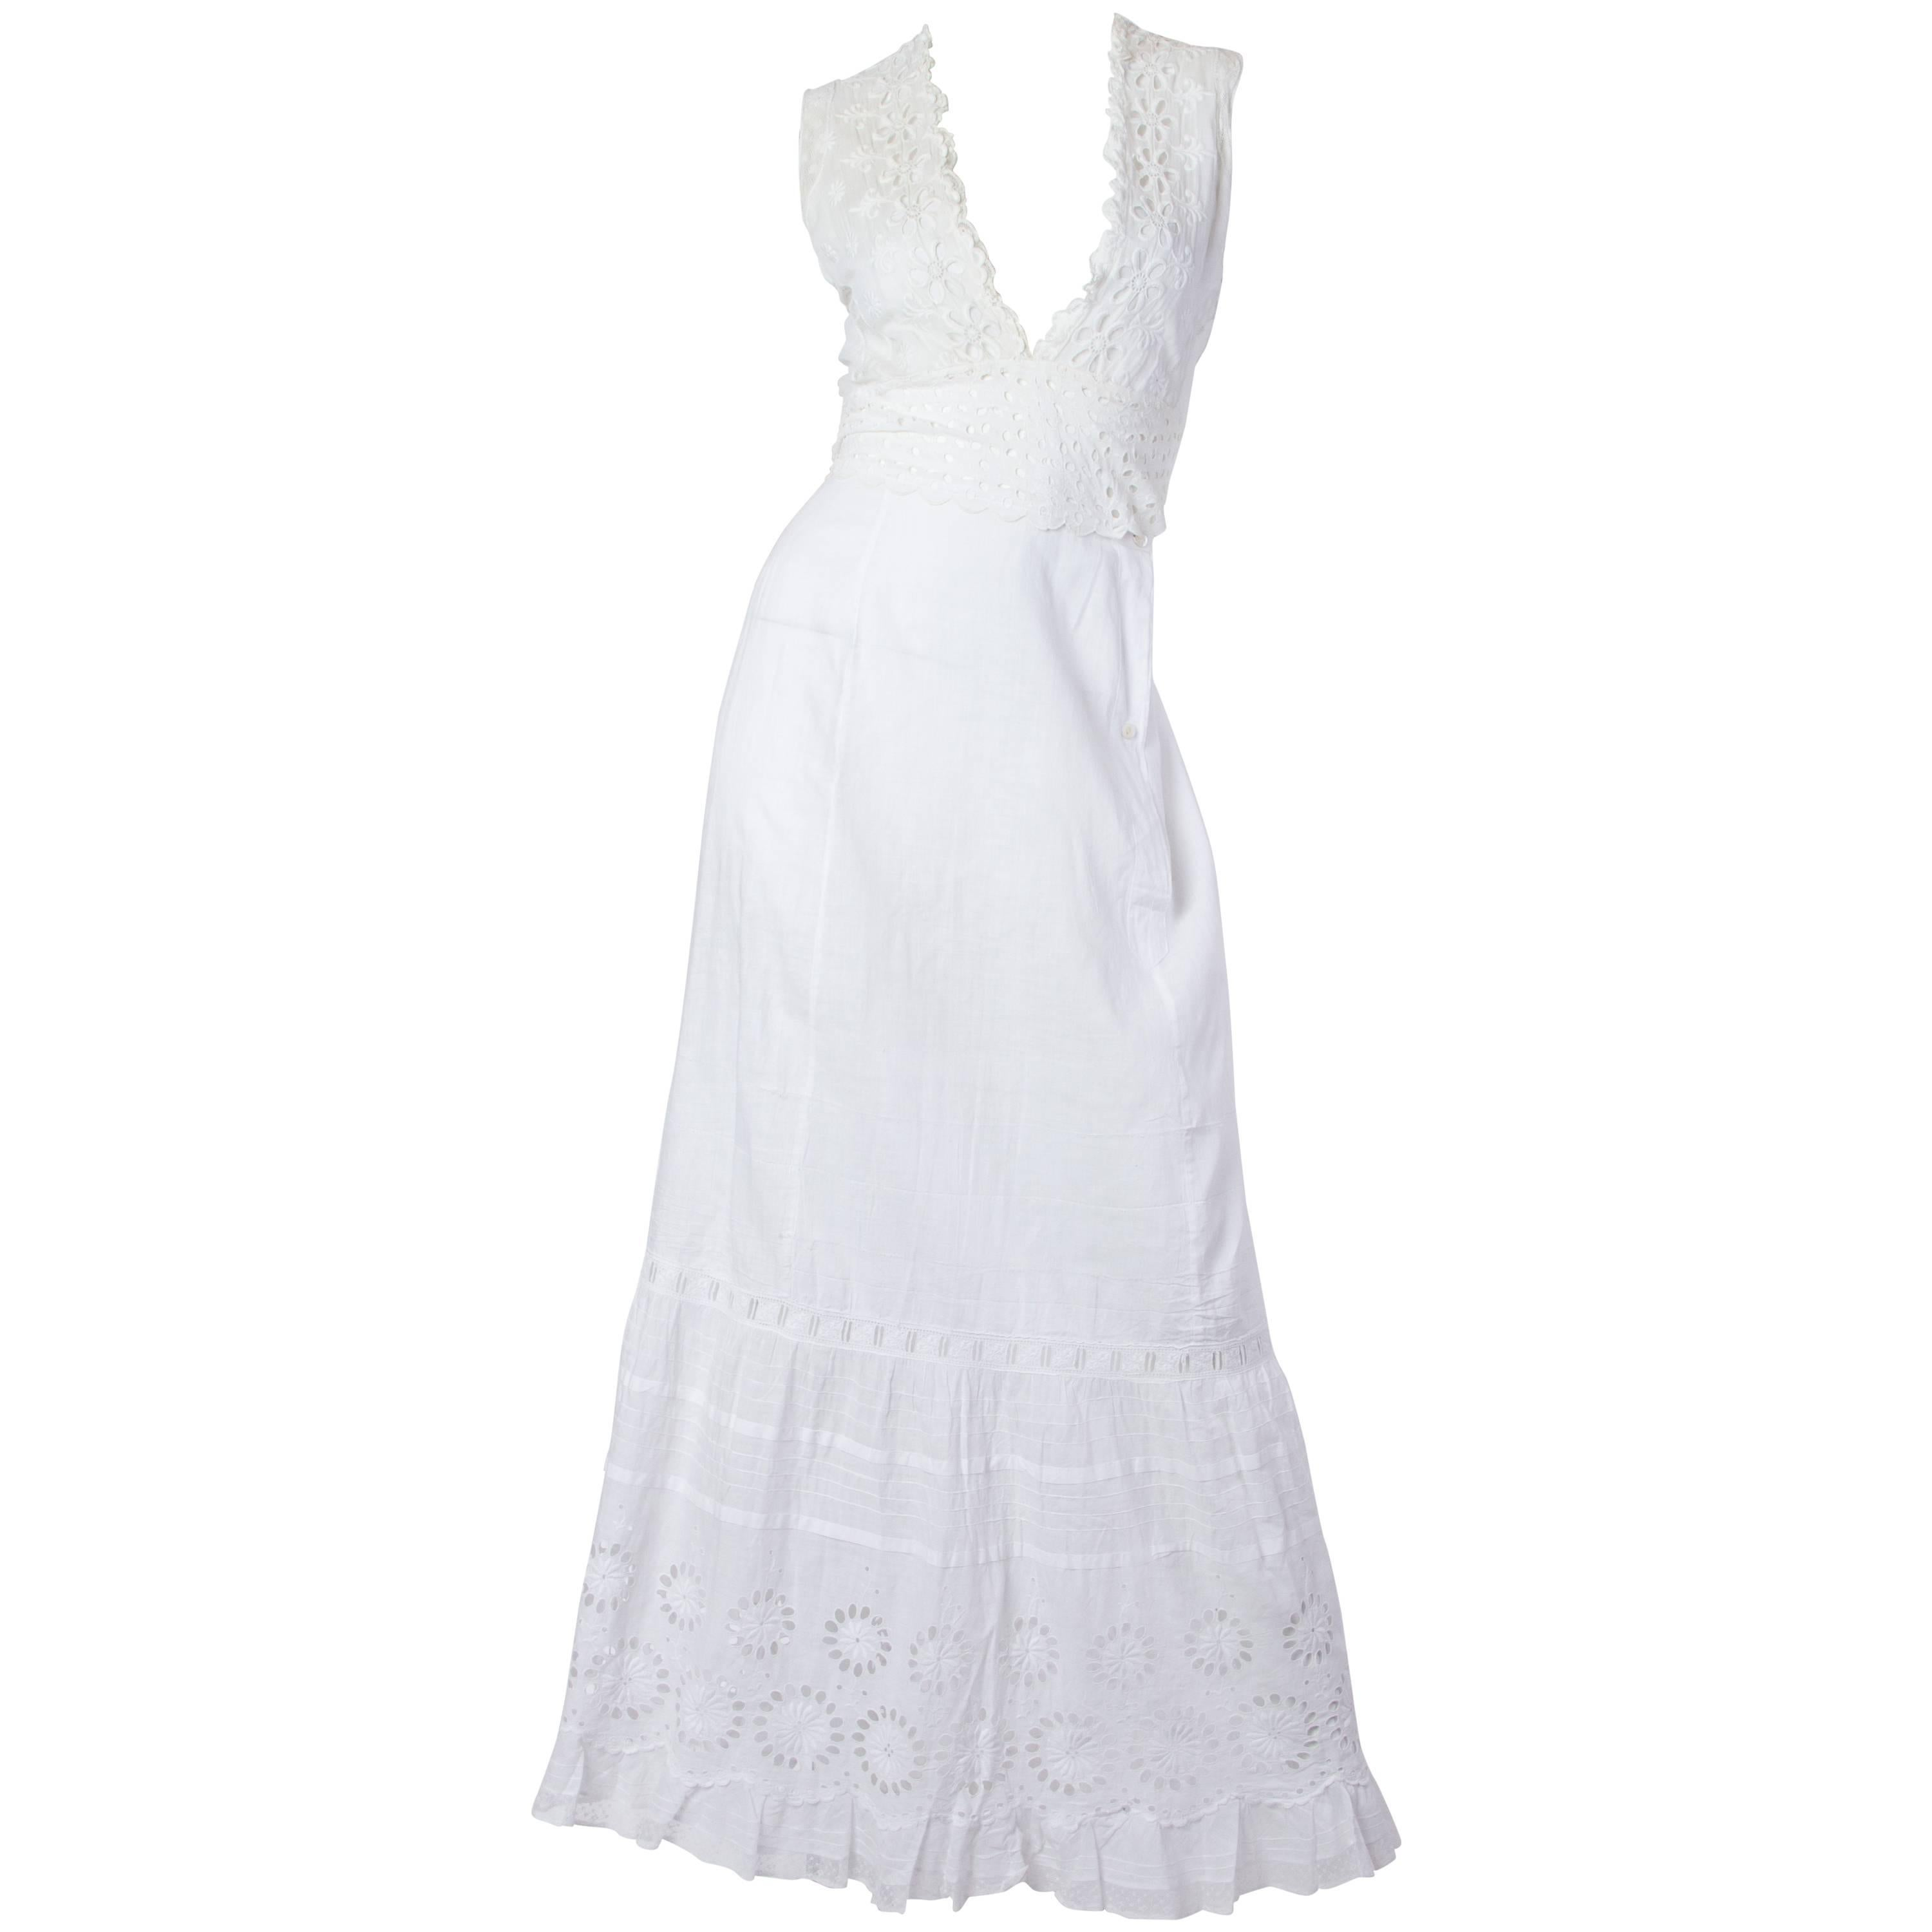 MORPHEW COLLECTION White Organic Cotton Eyelet Lace Maxi Dress Made From Victor